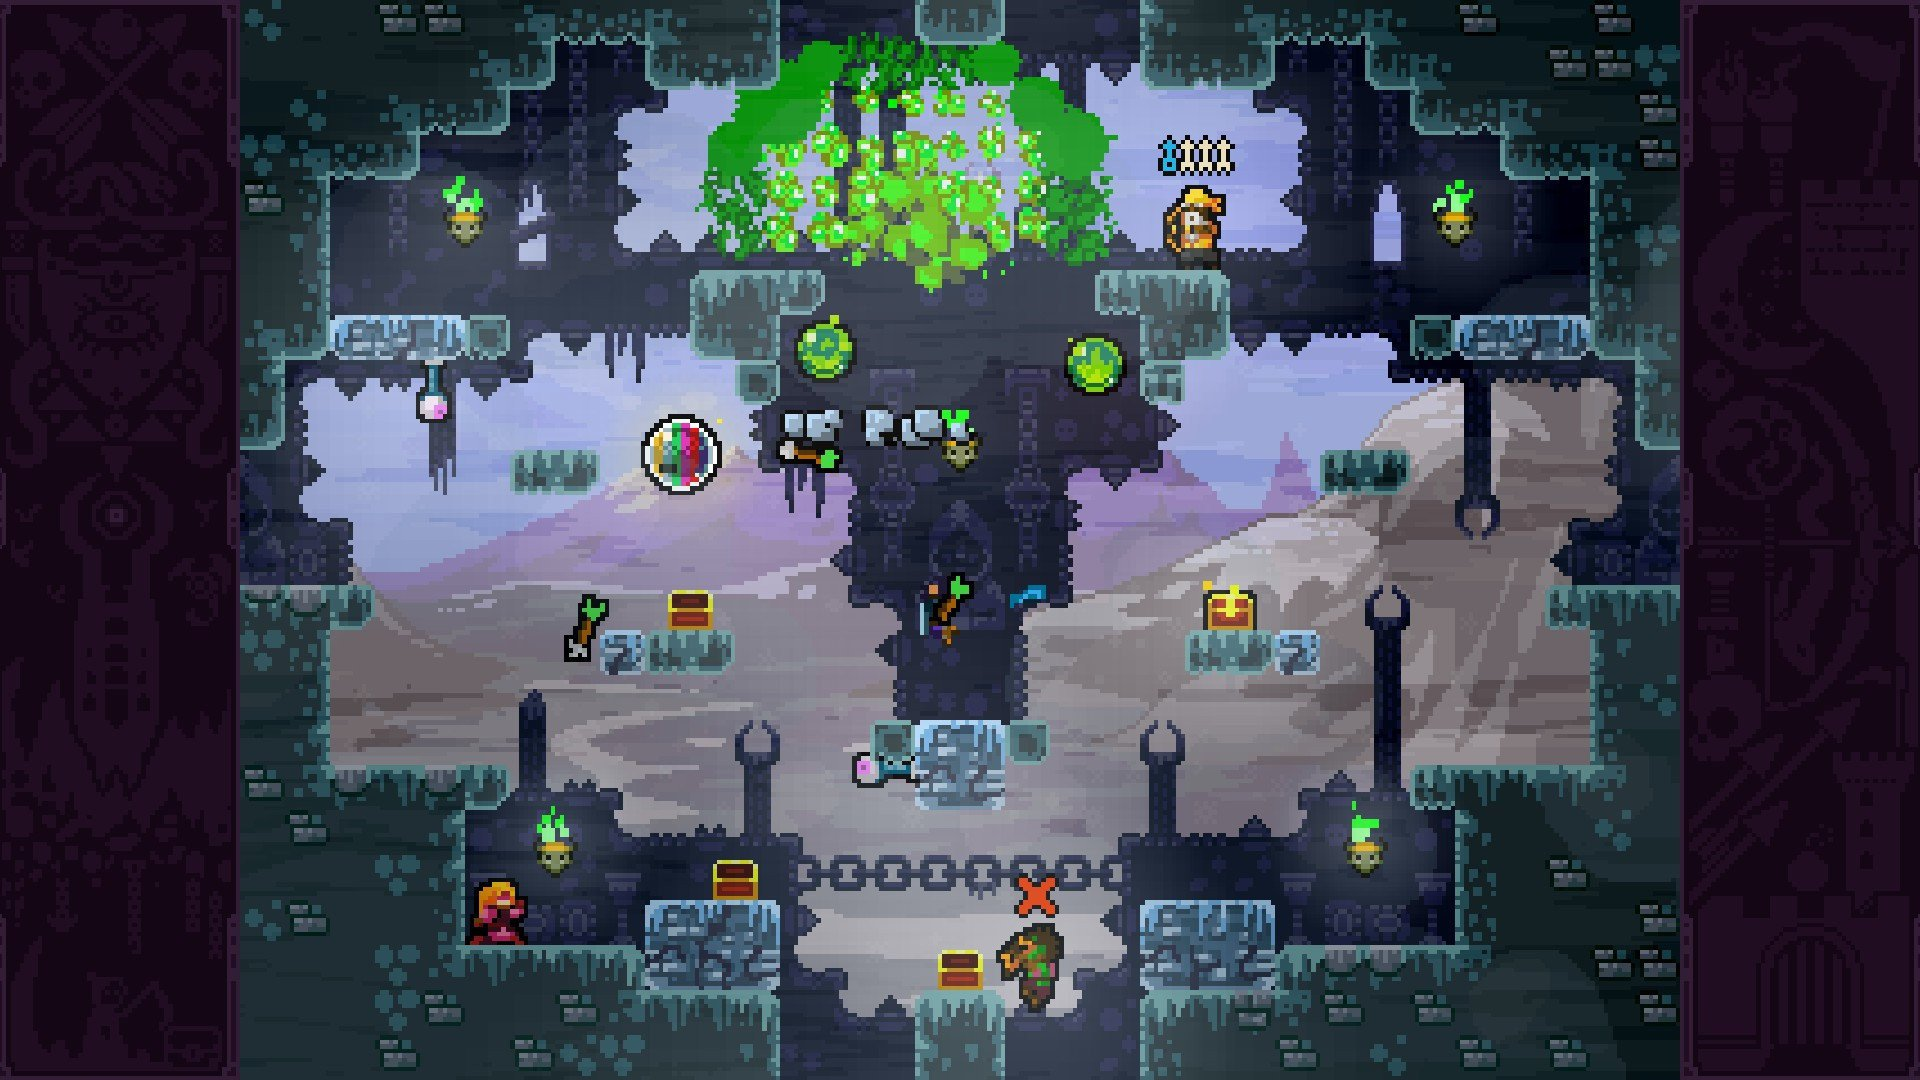 5. TowerFall: Ascension